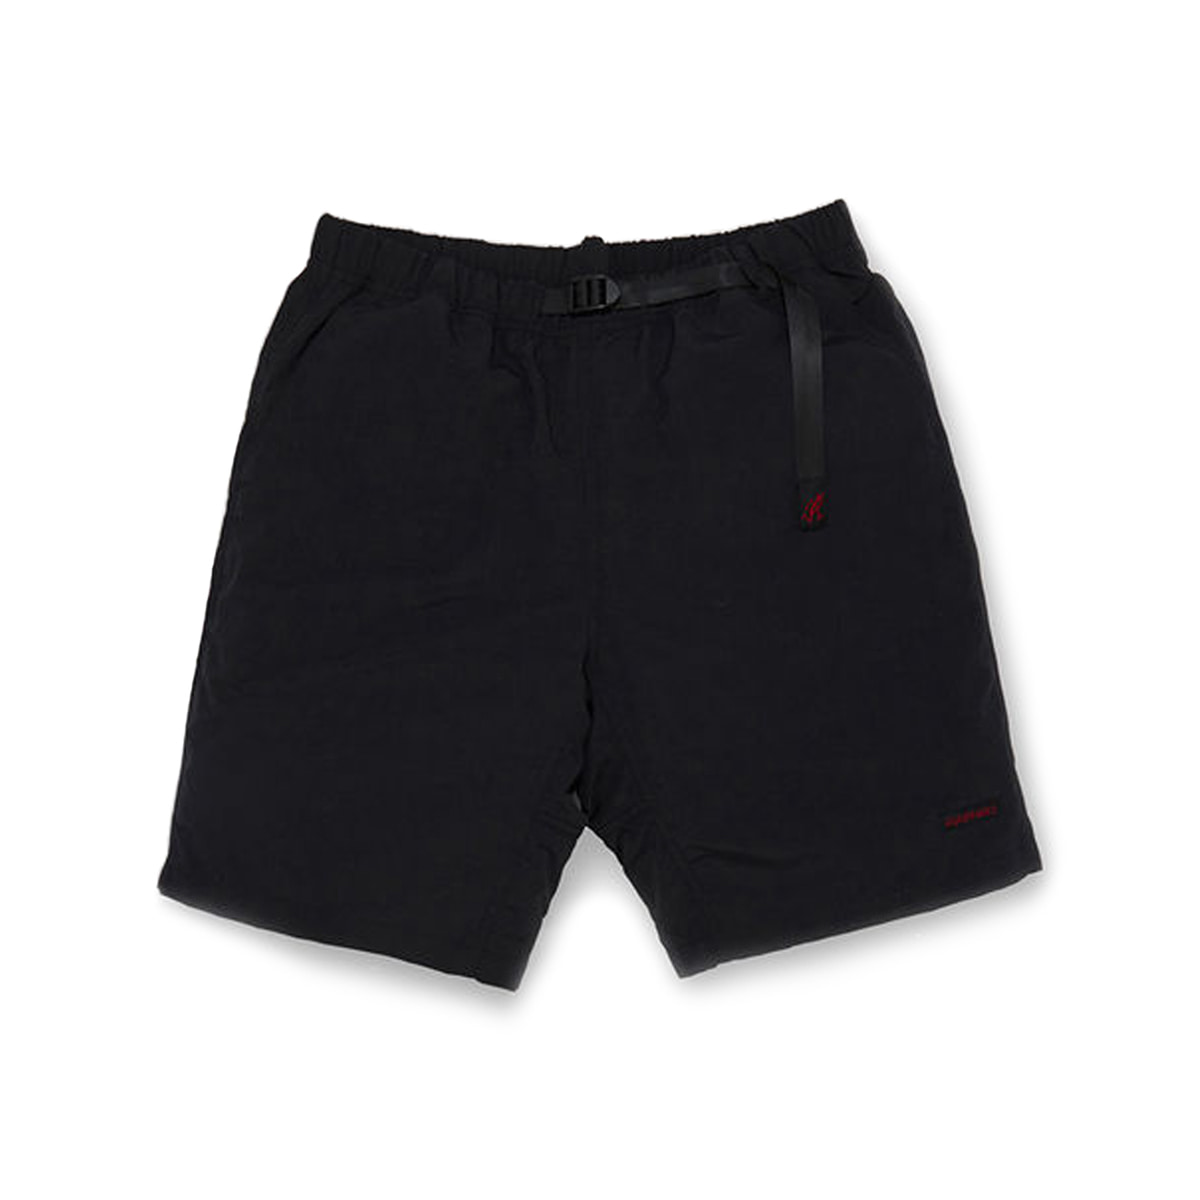 [GRAMICCI] PACKABLE SHORTS 'DARK'